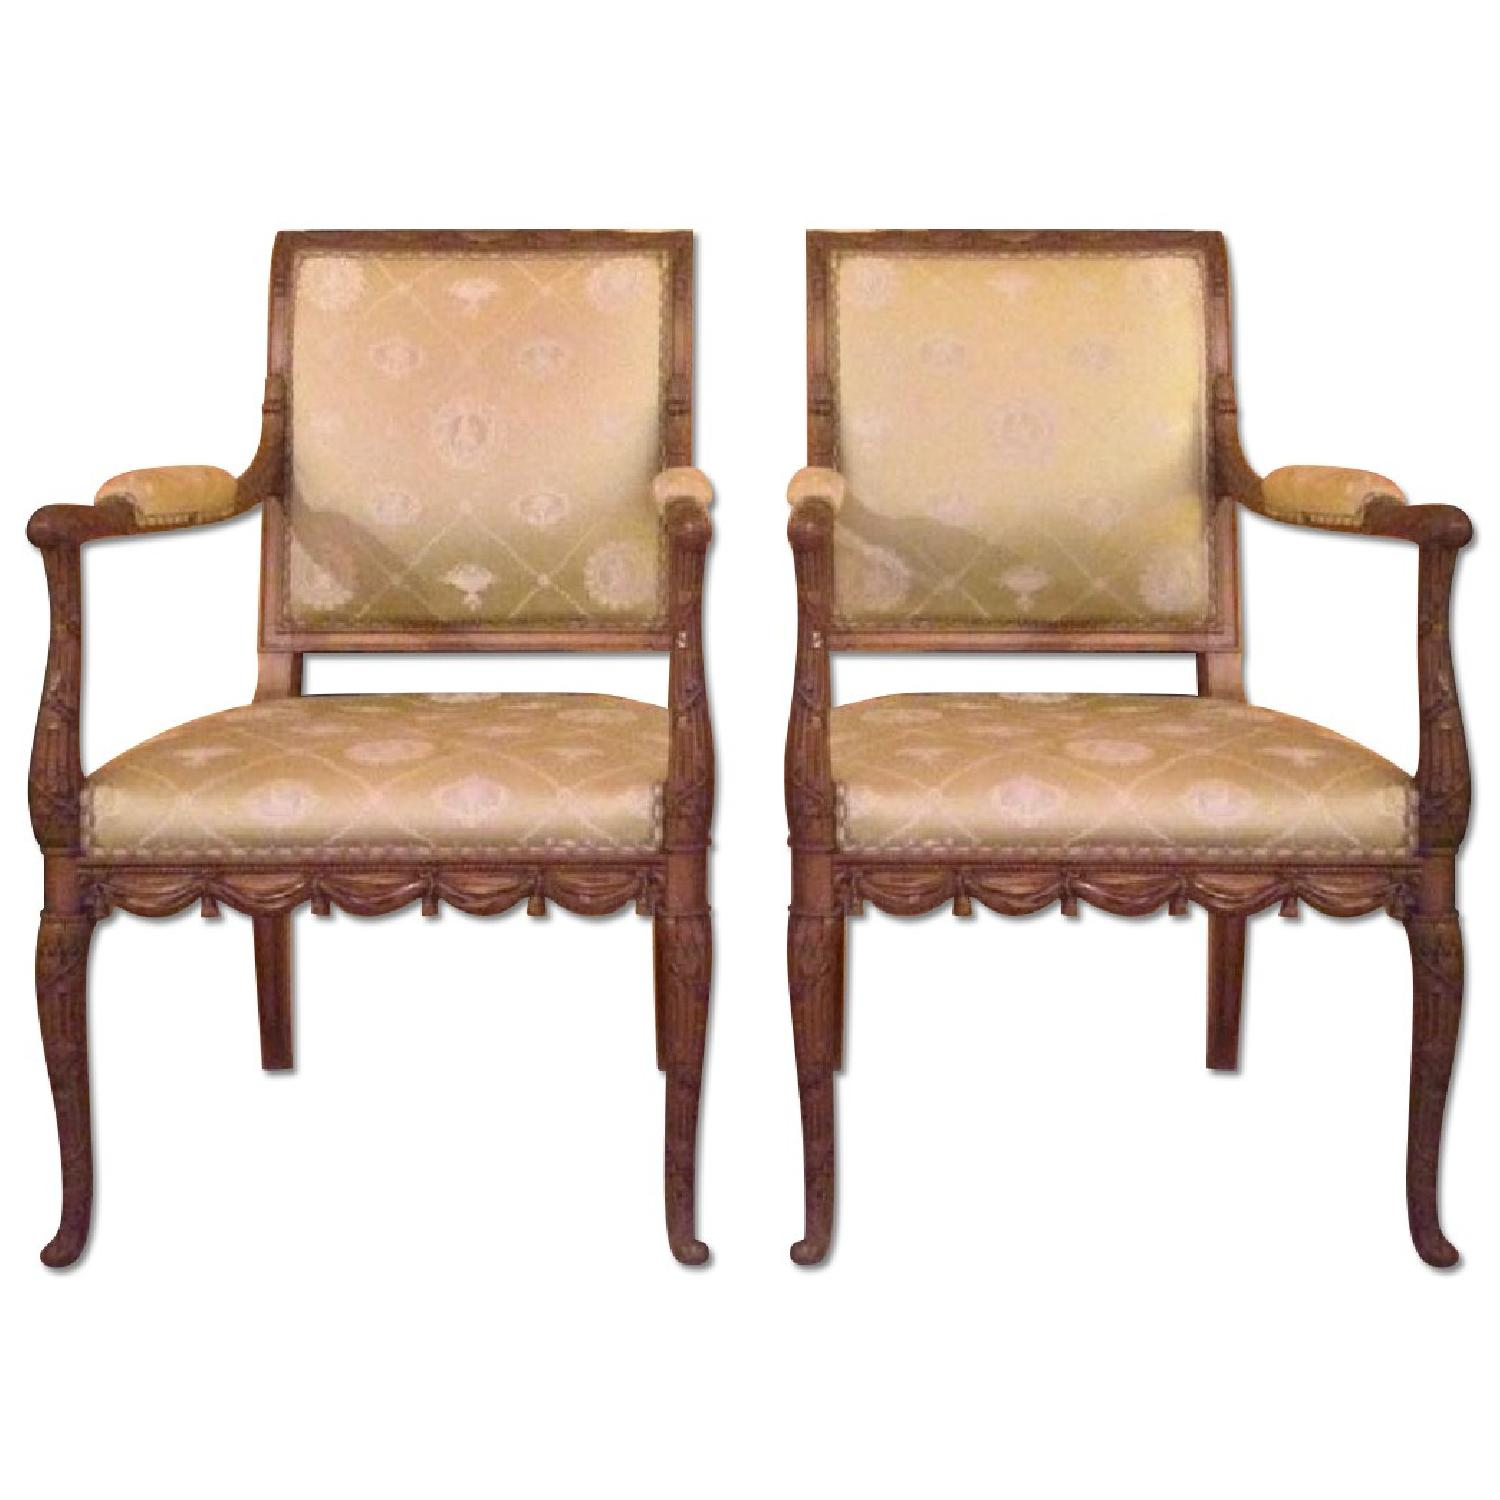 Adams Style Arm Chair - image-0